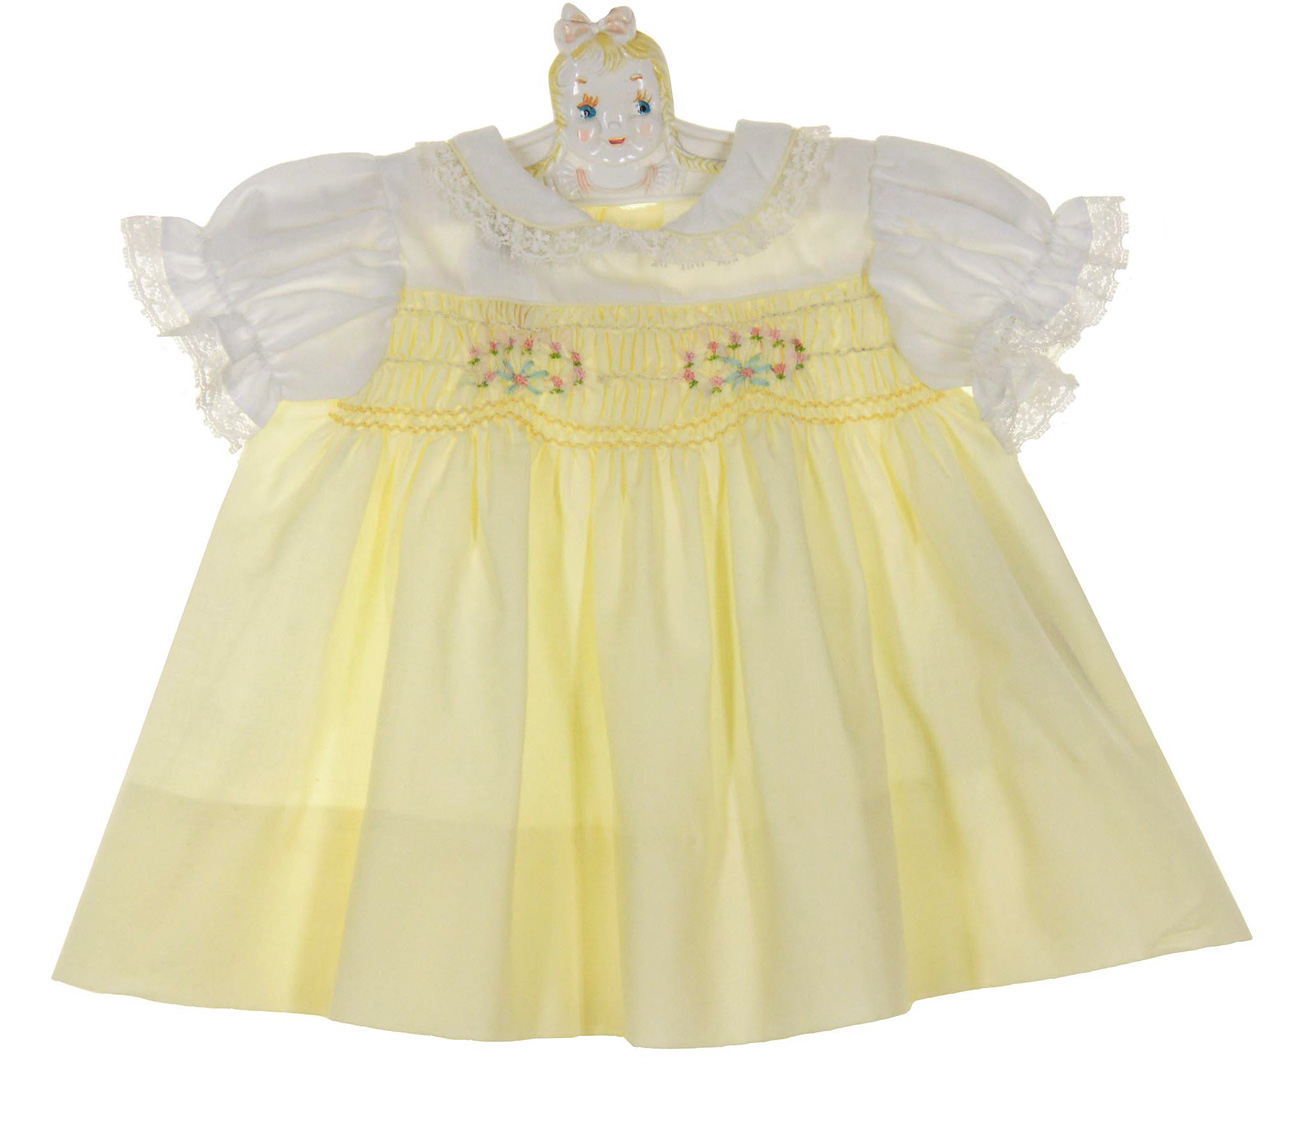 b7e343063 NEW Polly Flinders Yellow and White Smocked Dress with Pink Embroidered  Flowers